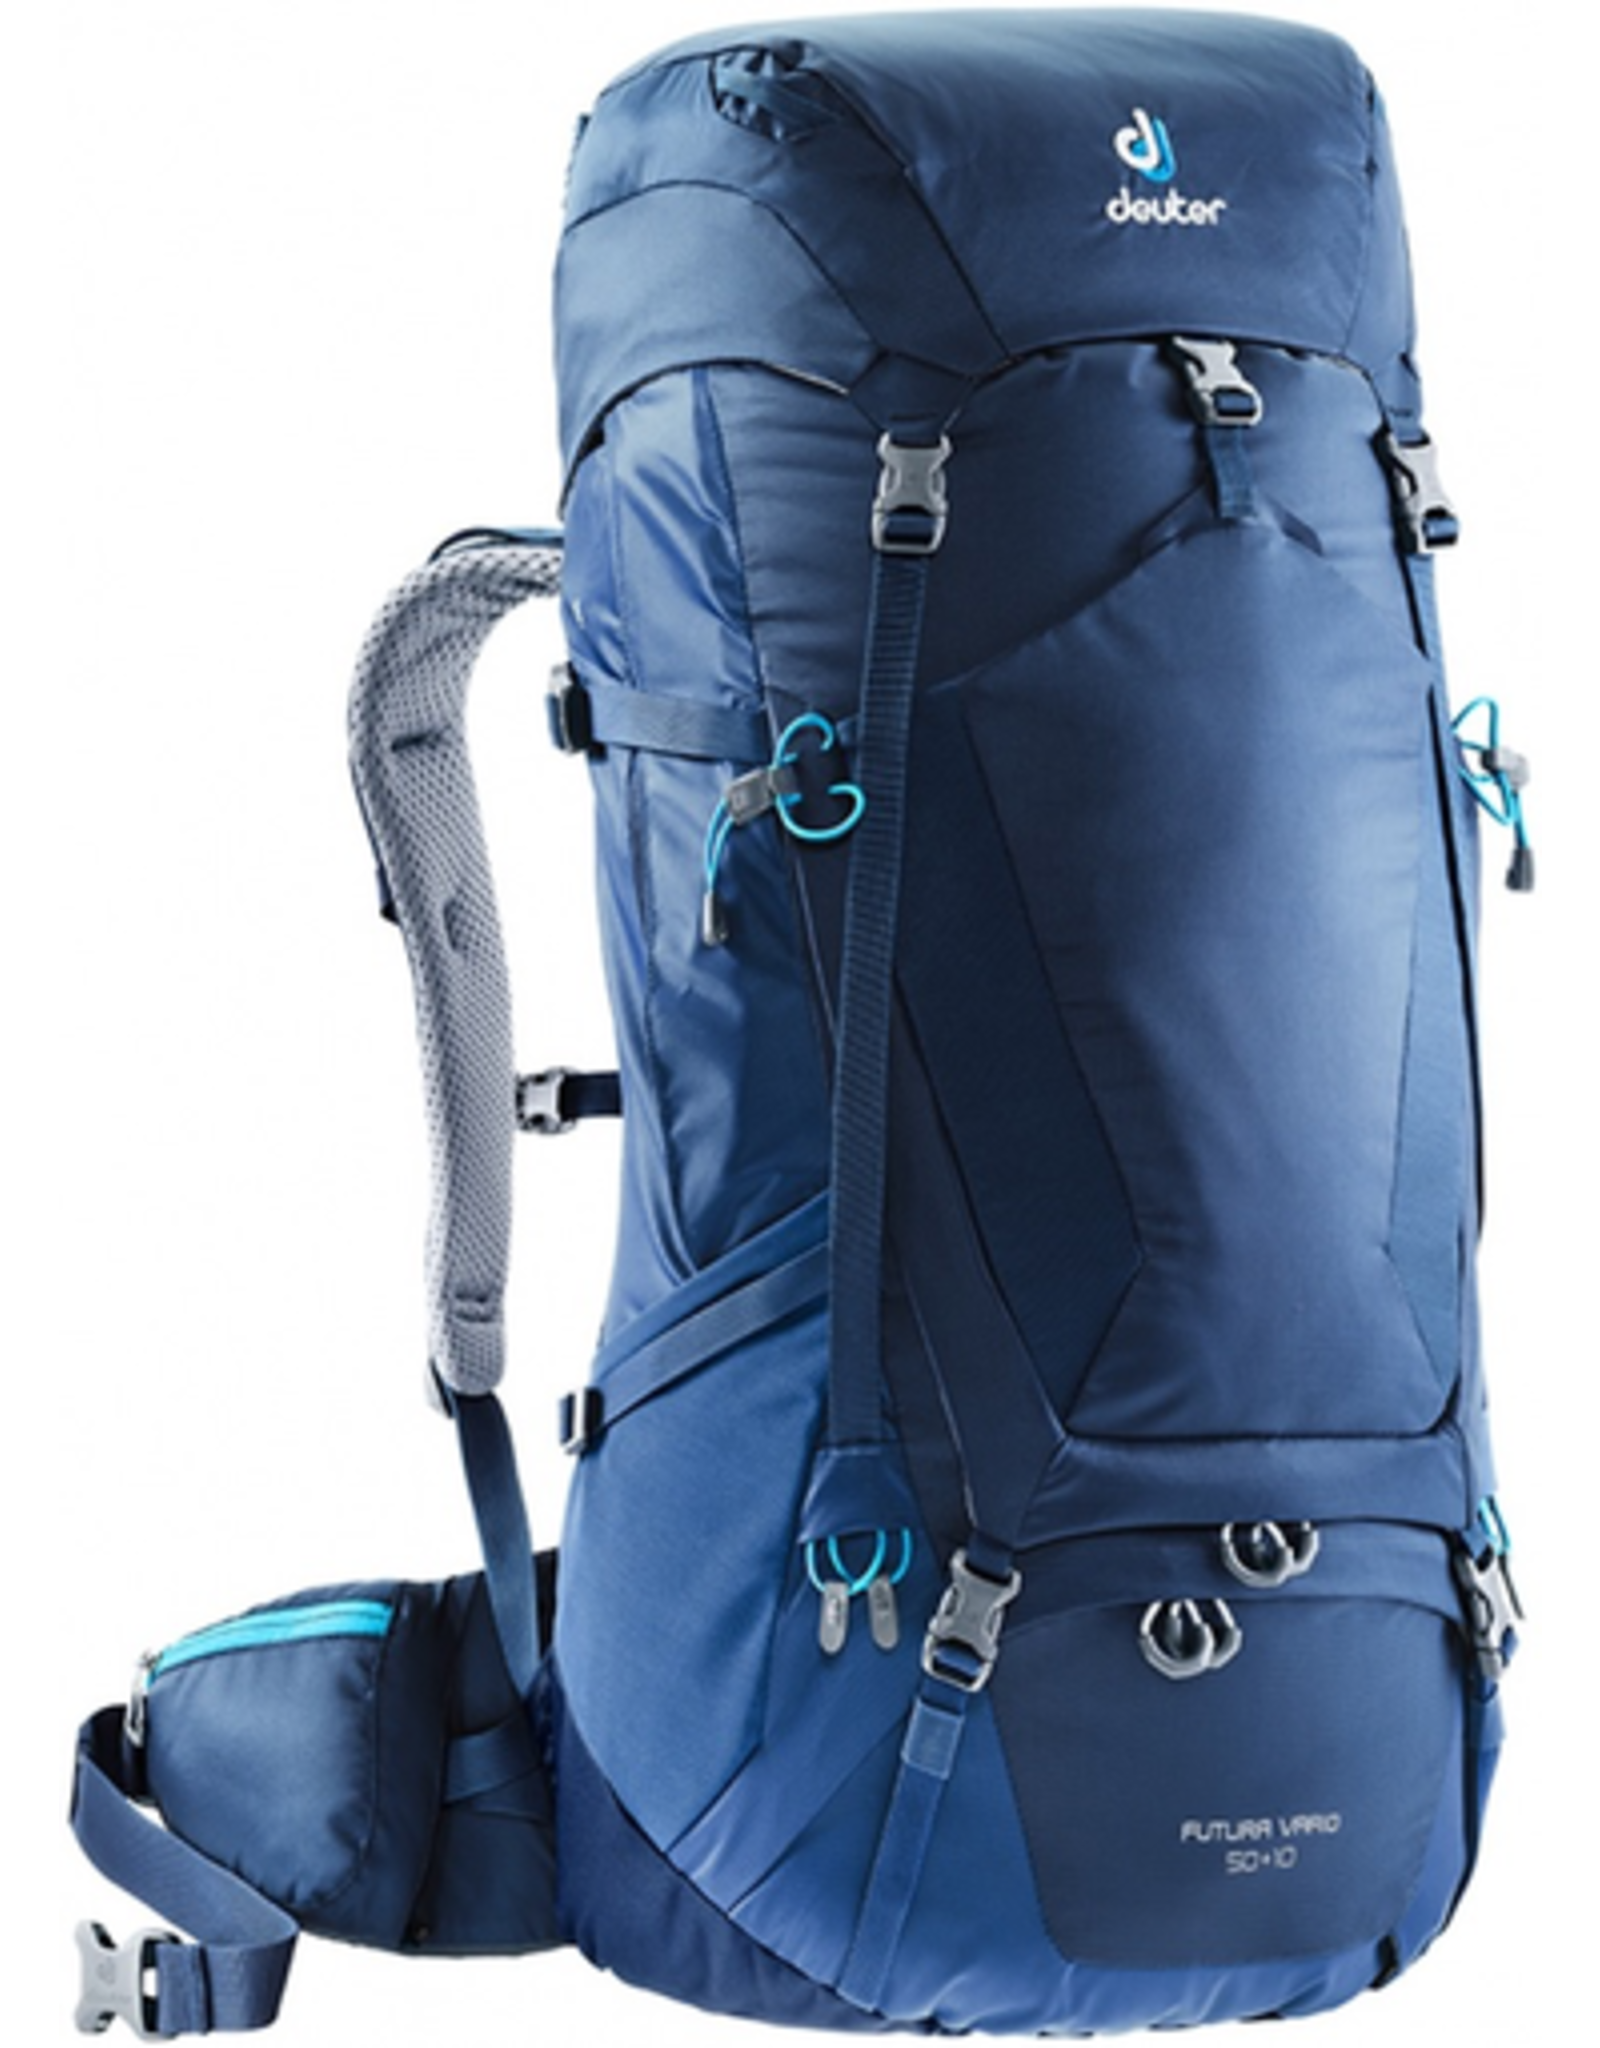 Deuter Deuter Futura Vario 50+10 Backpack, Midnight/Steel